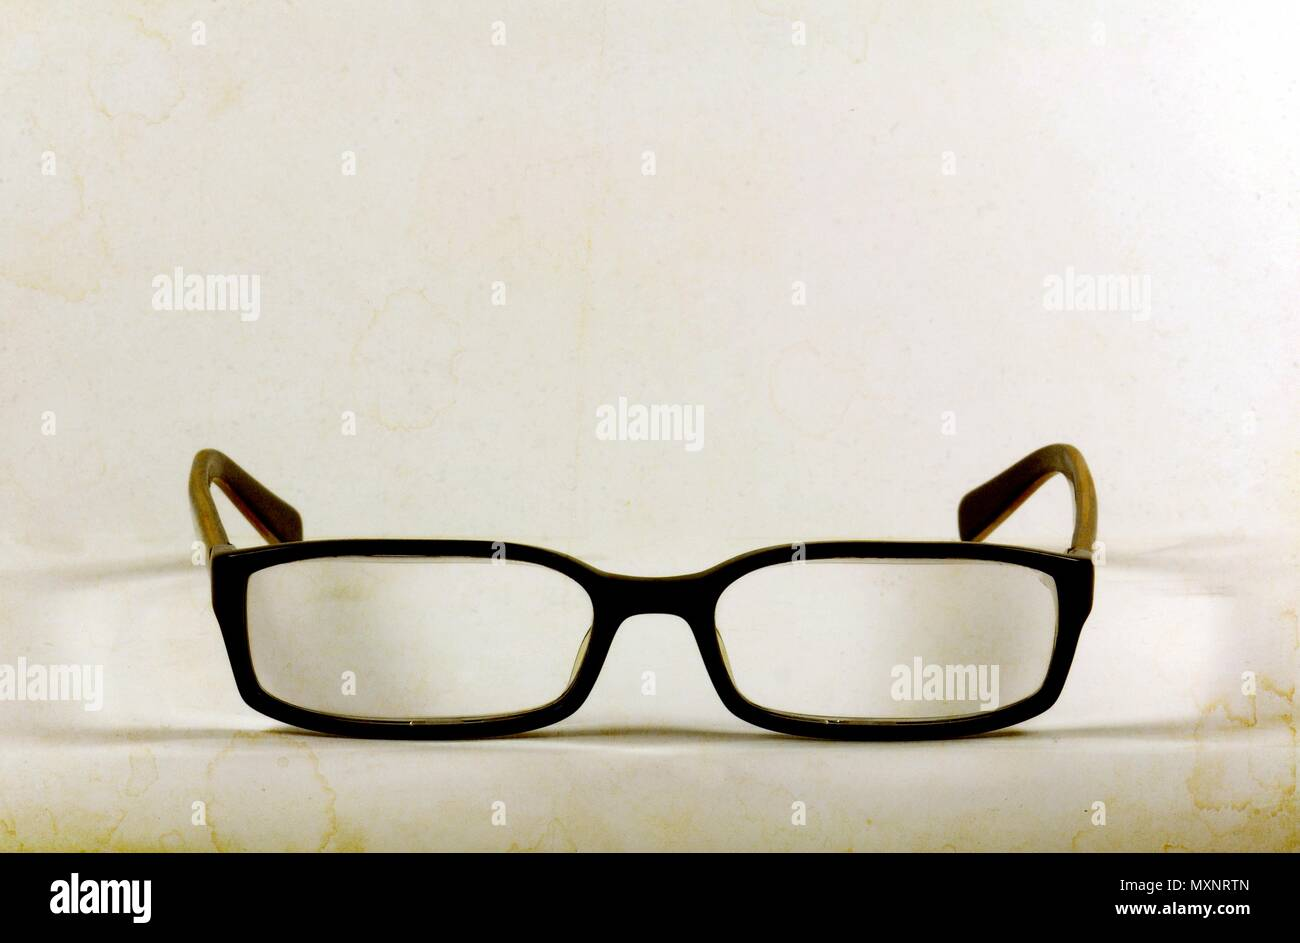 Black fashion textured reading glasses on white background. - Stock Image